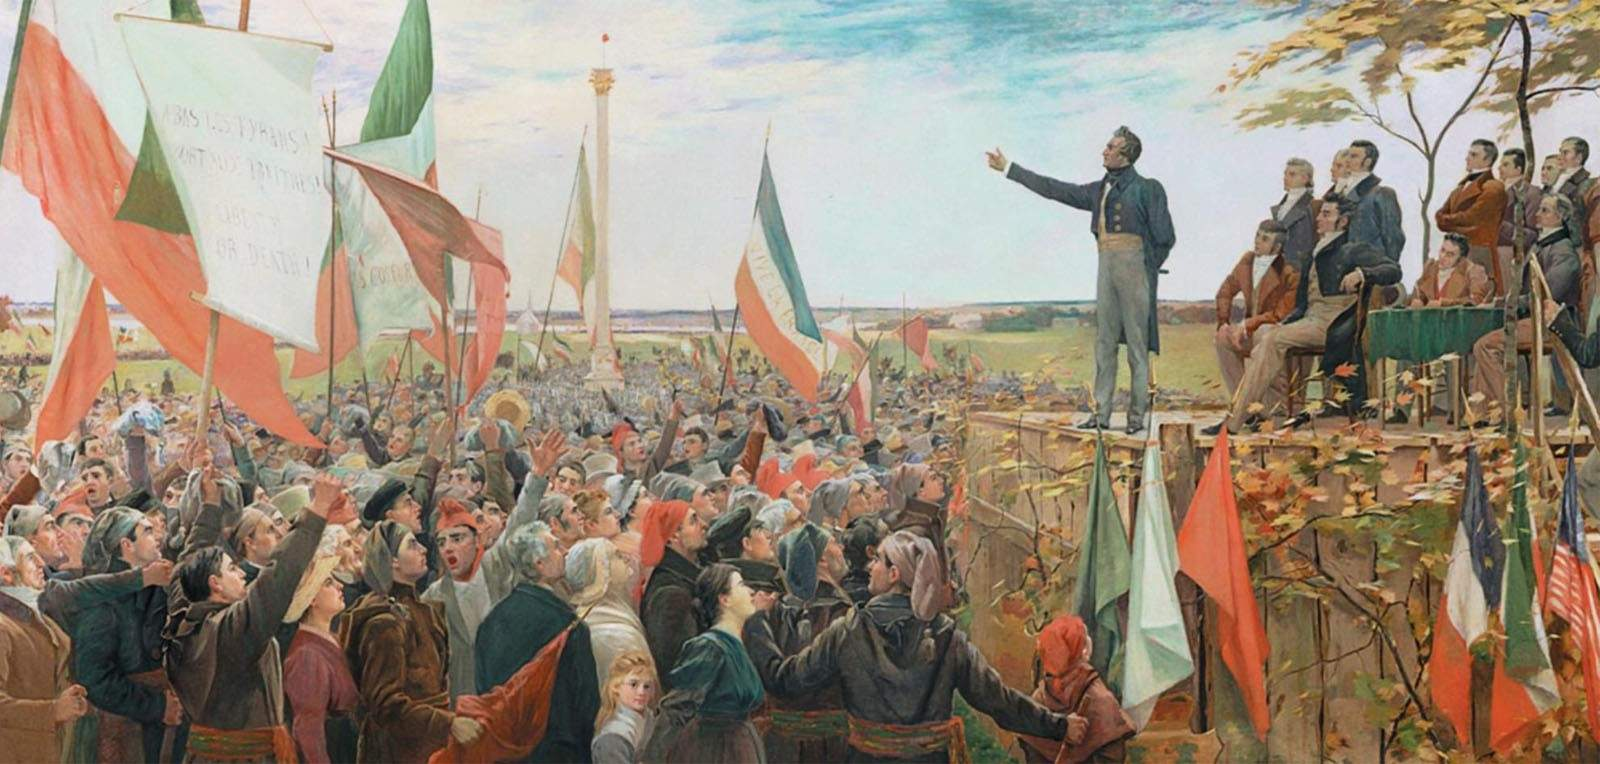 nationalism and convictism in australia in 19th century As he said, the fact that australia was 'for nearly the first half-century of its   against 'the ugly nineteenth-century vice of cultural nationalism'28 ward's salvo  was to  primarily responsible for perpetuating the stigma of convictism30 and  yet.